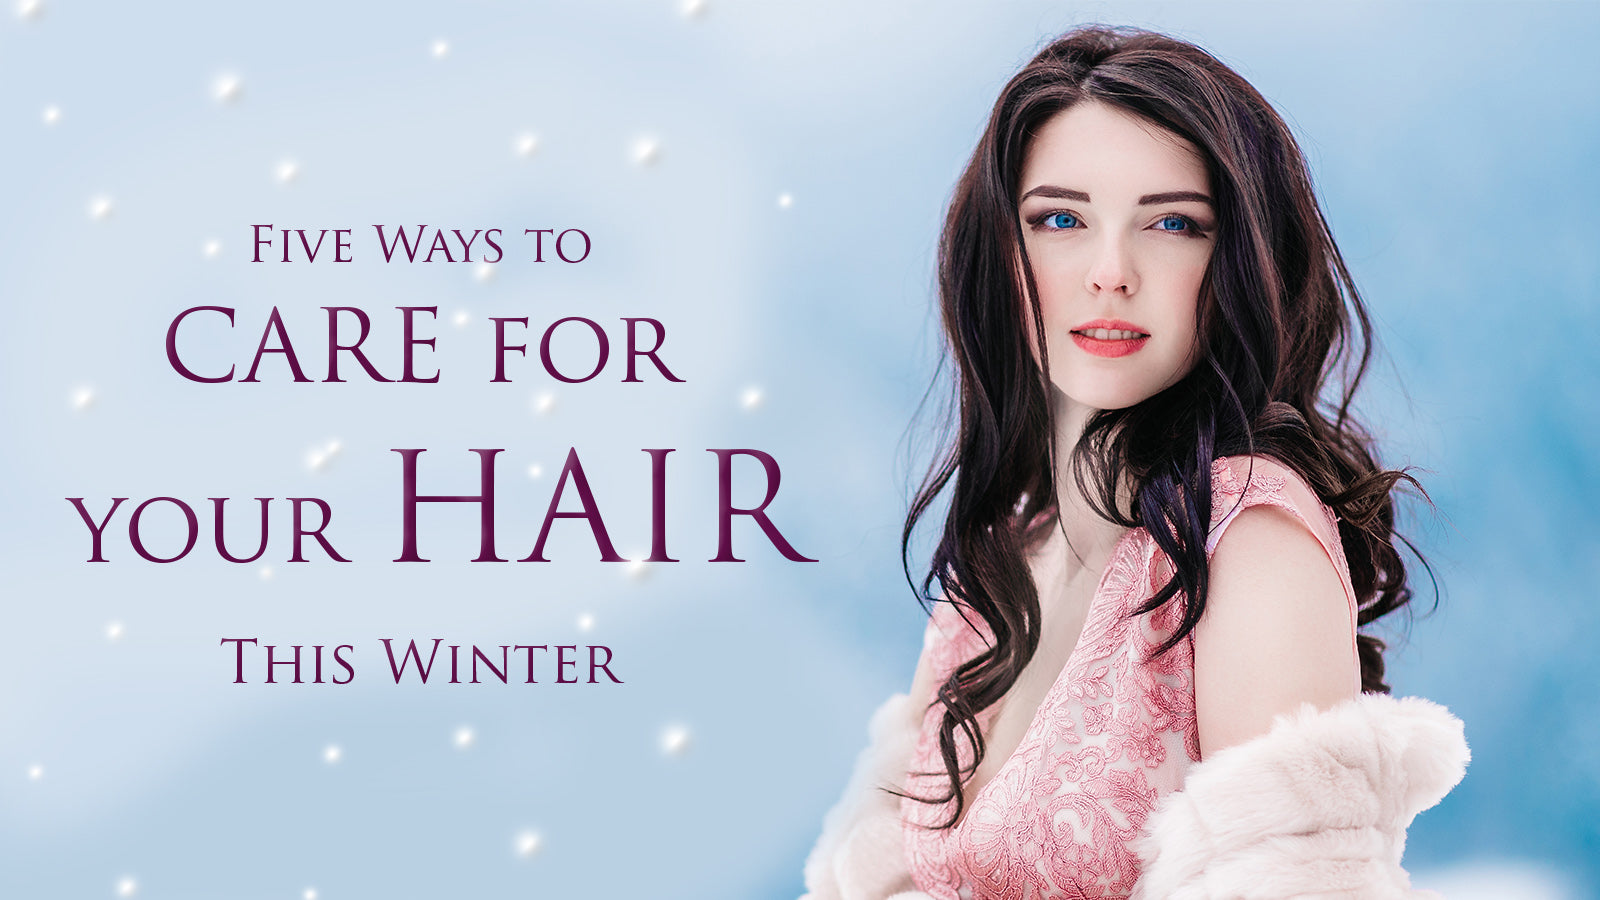 Five Ways to Care For Your Hair This Winter